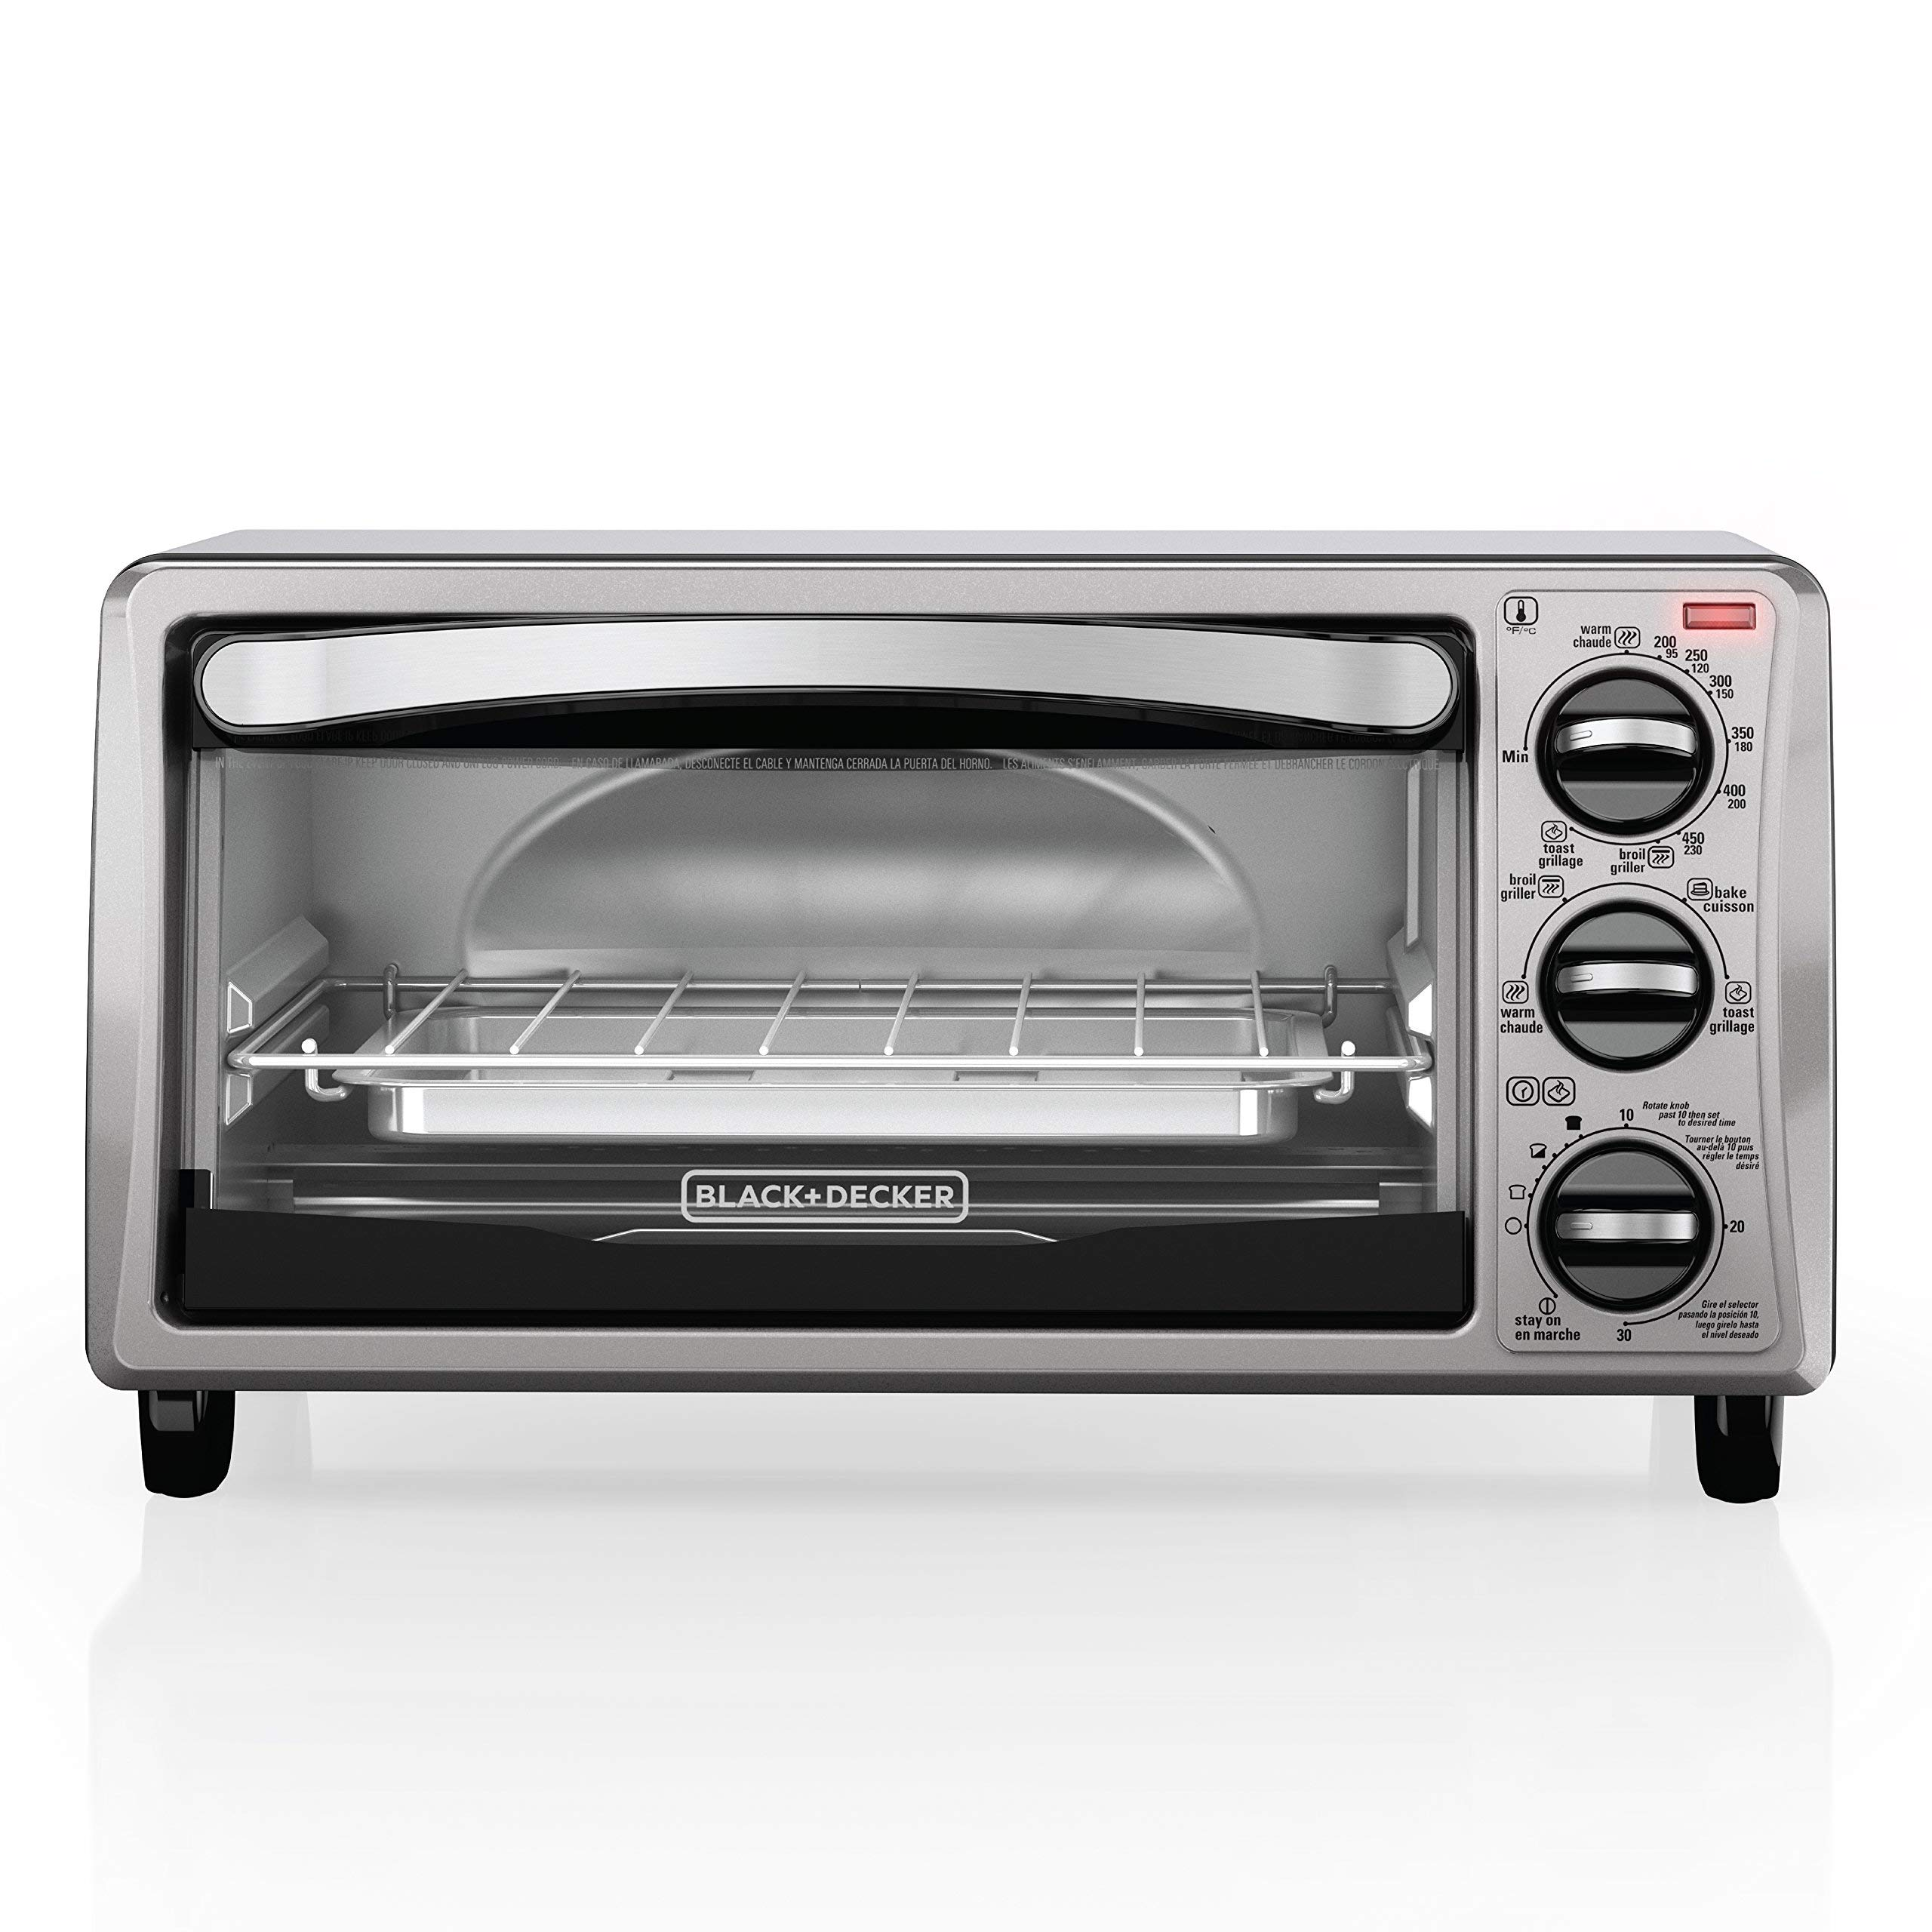 BLACK+DECKER TO1313SBD Decker To1313Sbd 4Slice Toaster Oven, Black (Renewed) by BLACK+DECKER